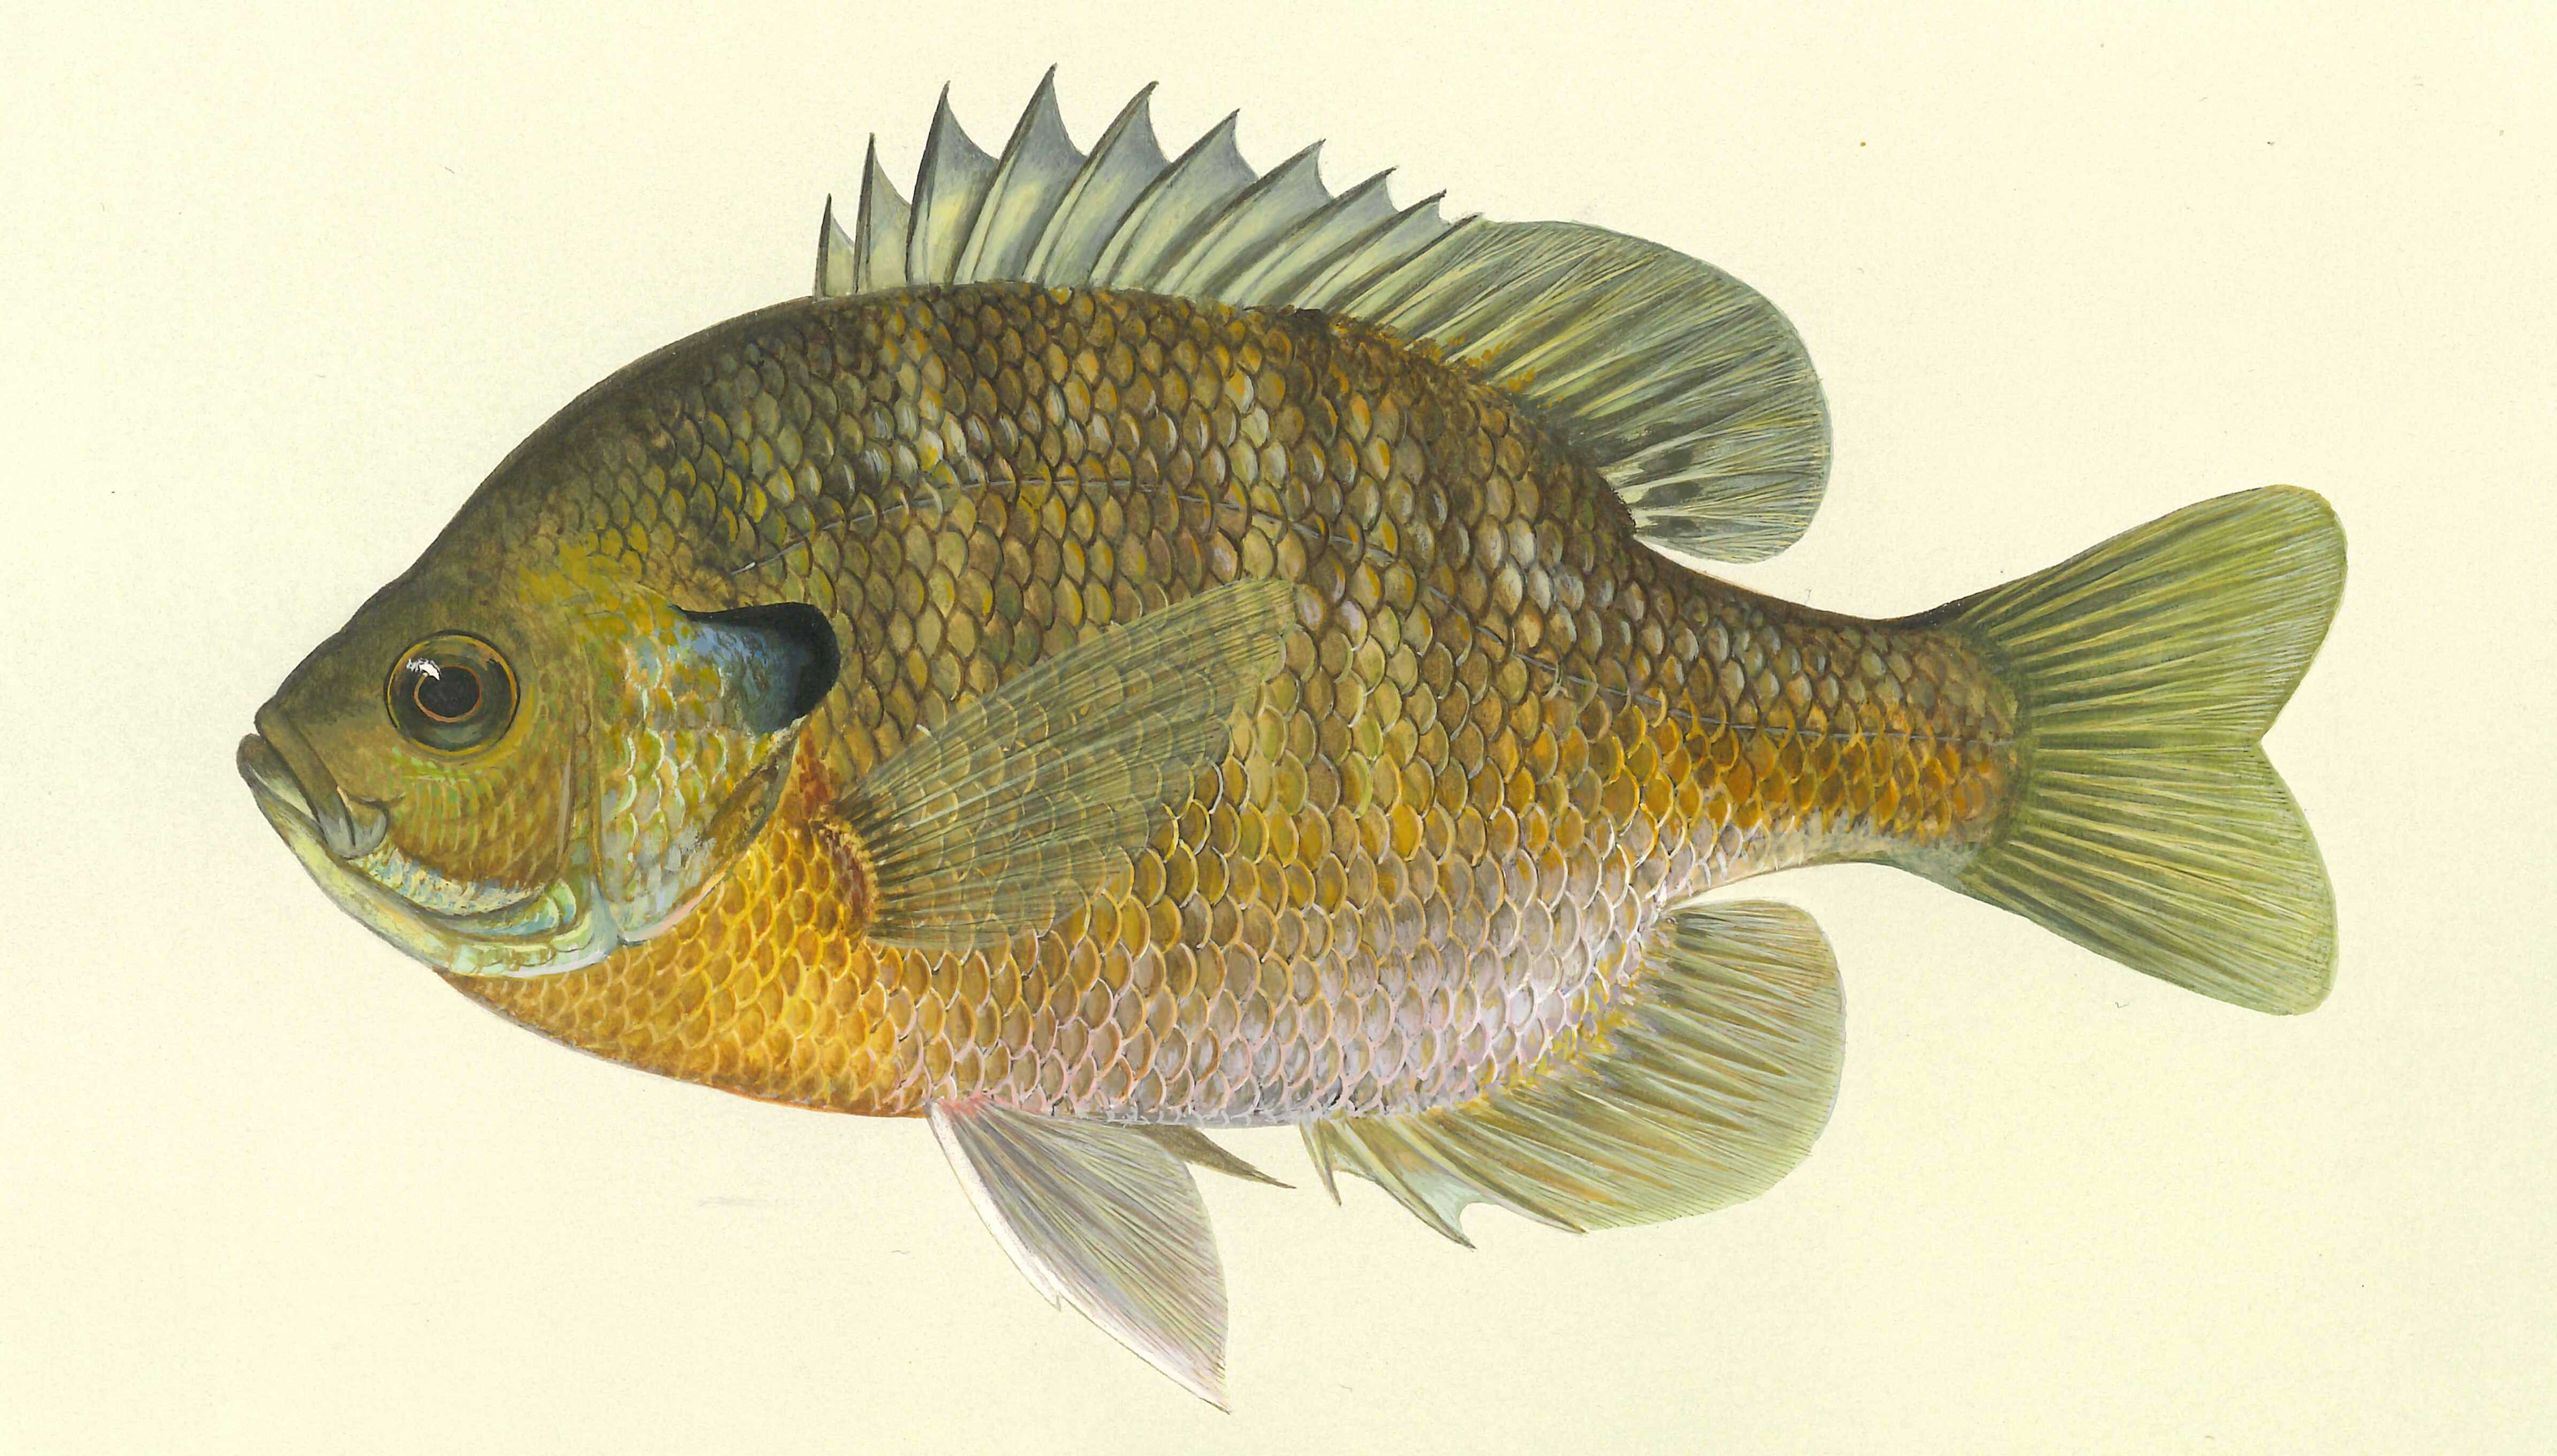 Bluegill, illustration by Maynard Reece, from Iowa Fish and Fishing.